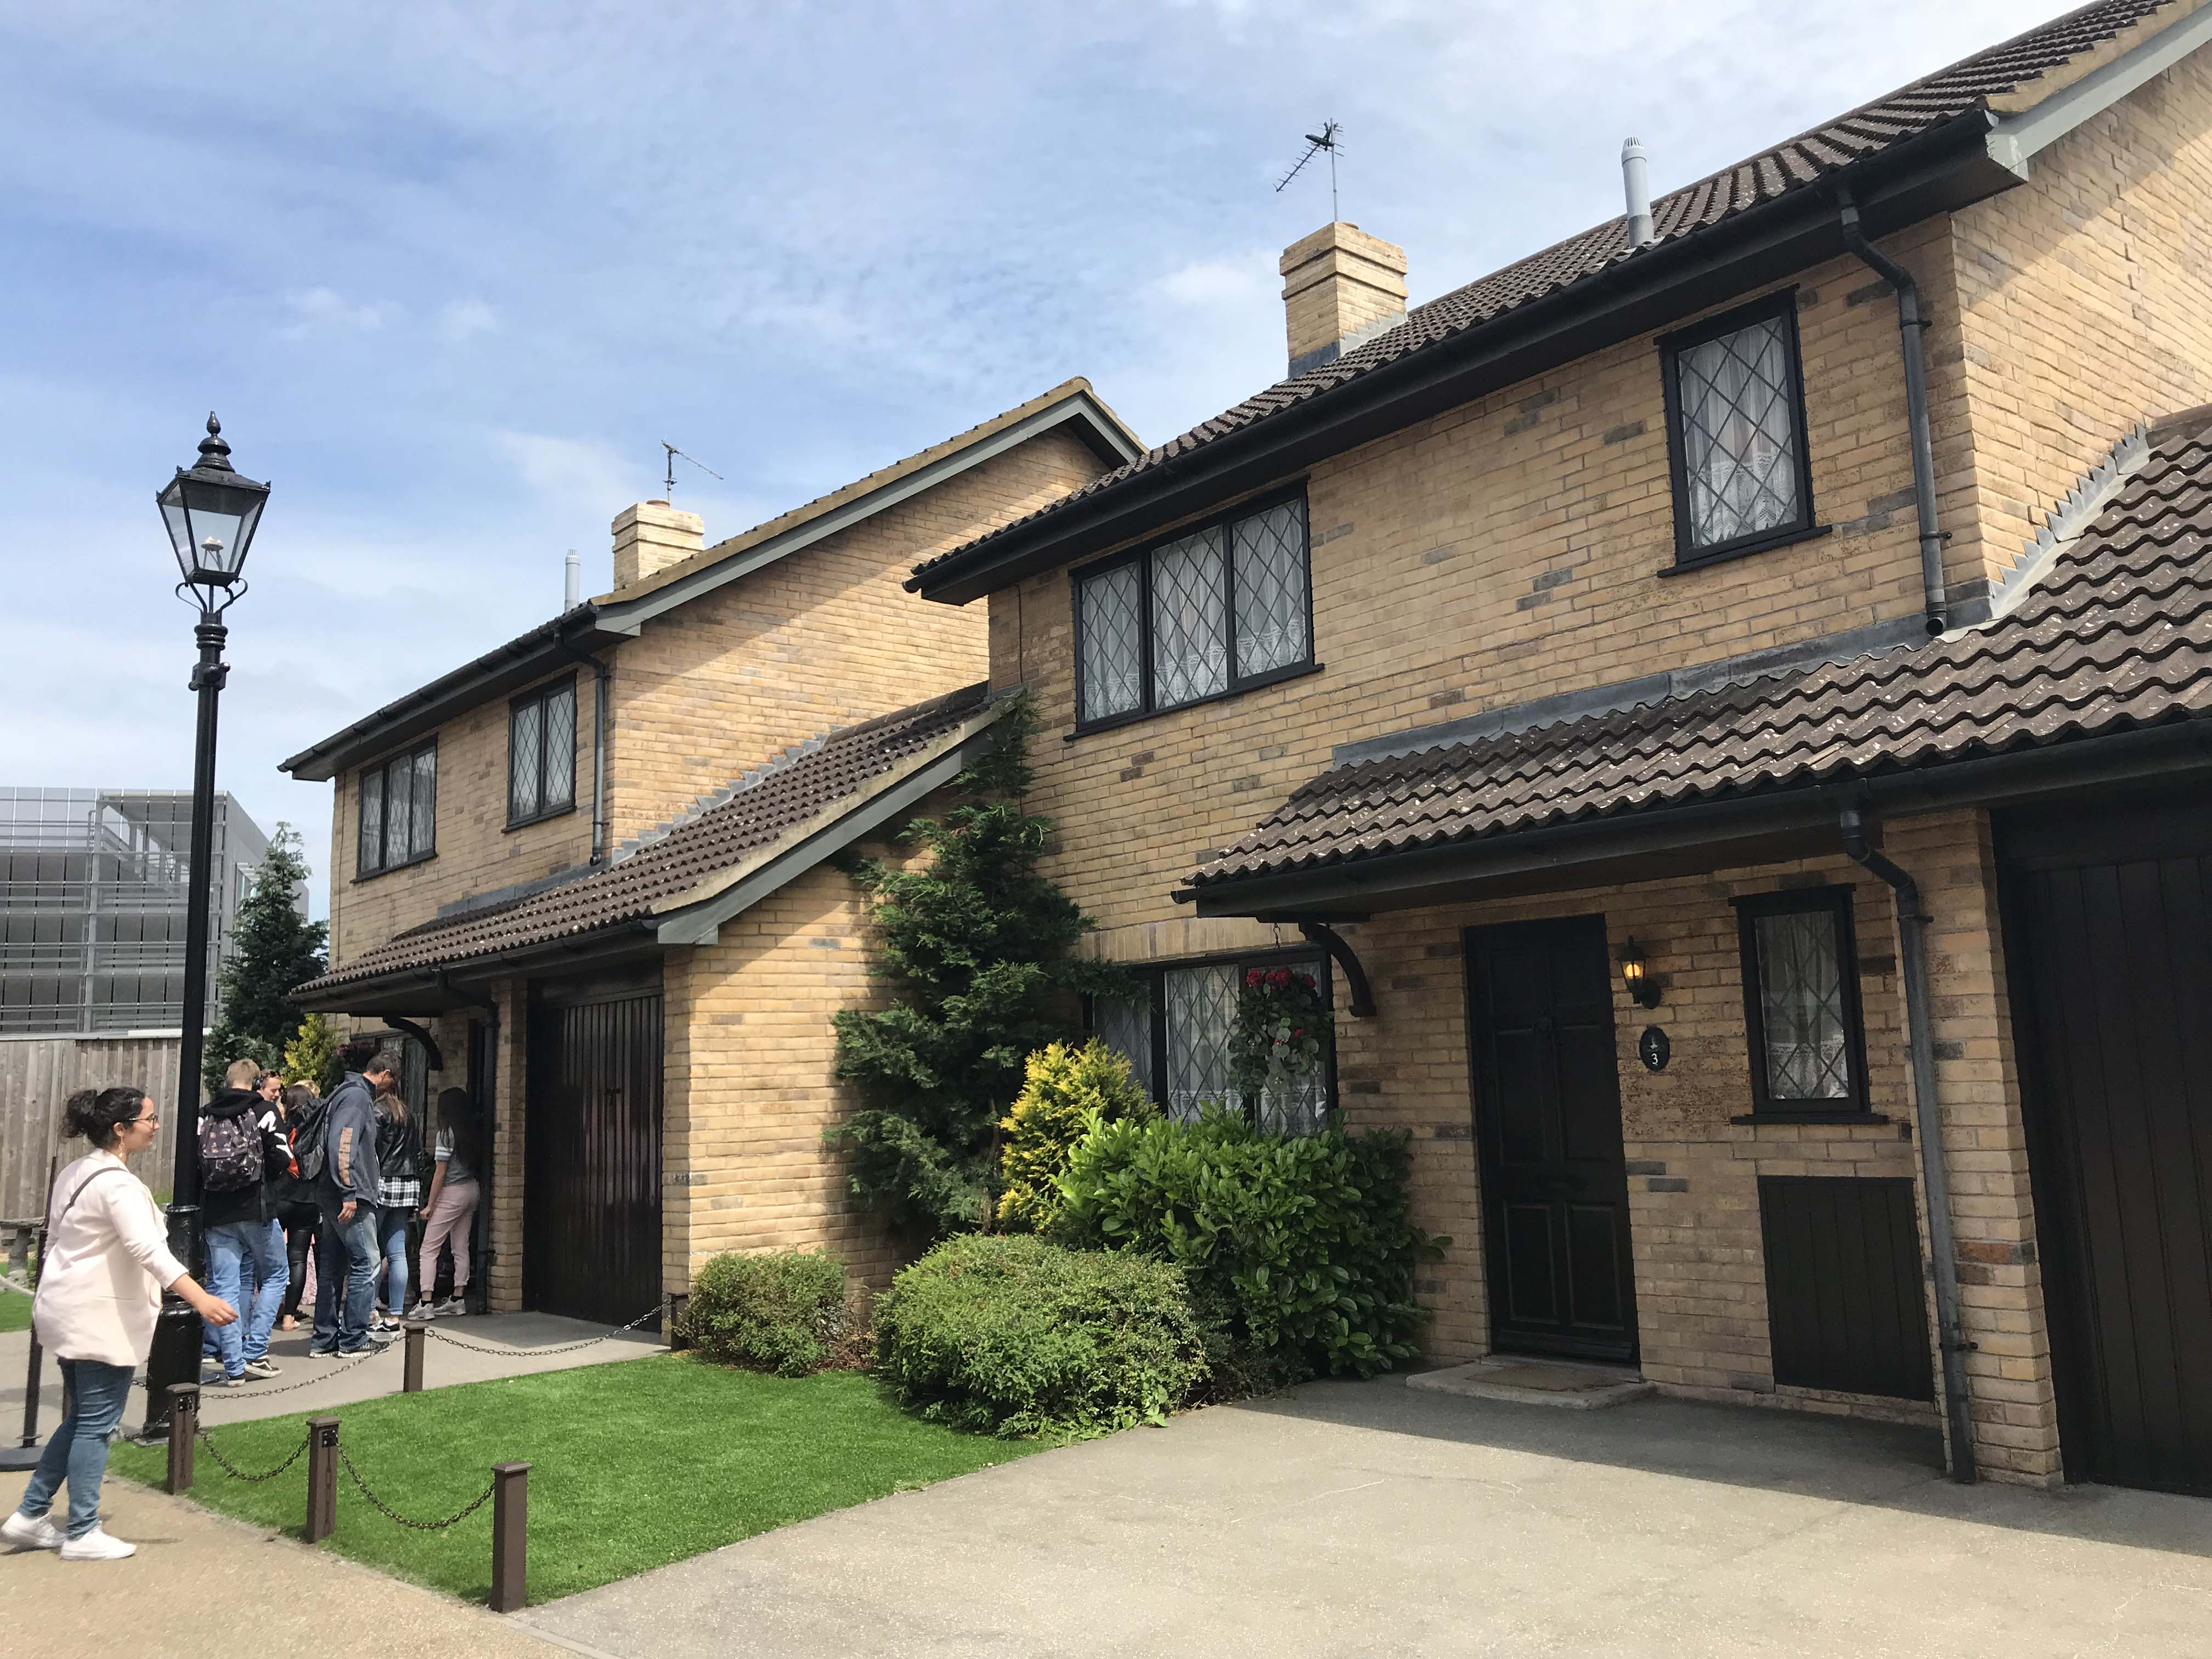 Harry Potter Studio Tour Privet Drive